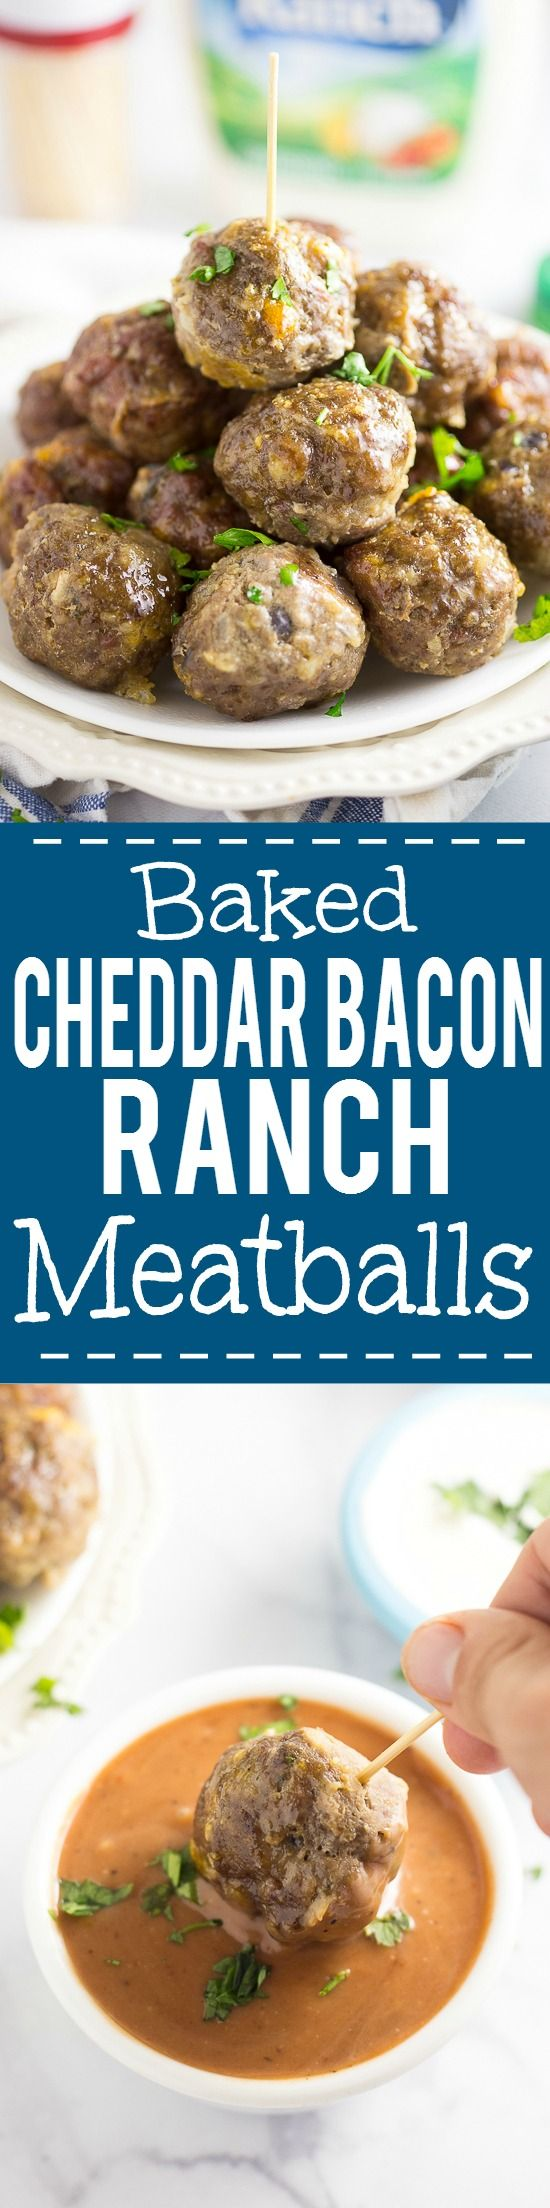 Baked Cheddar Bacon Ranch Meatballs Recipe -These tangy, zesty Baked Cheddar Bacon Ranch Meatballs have a to-die-for flavor combo and are baked in the oven for a delicious, quick and easy appetizer recipe. #FreshHolidayTips AD @walmart @gladproducts @hvranch